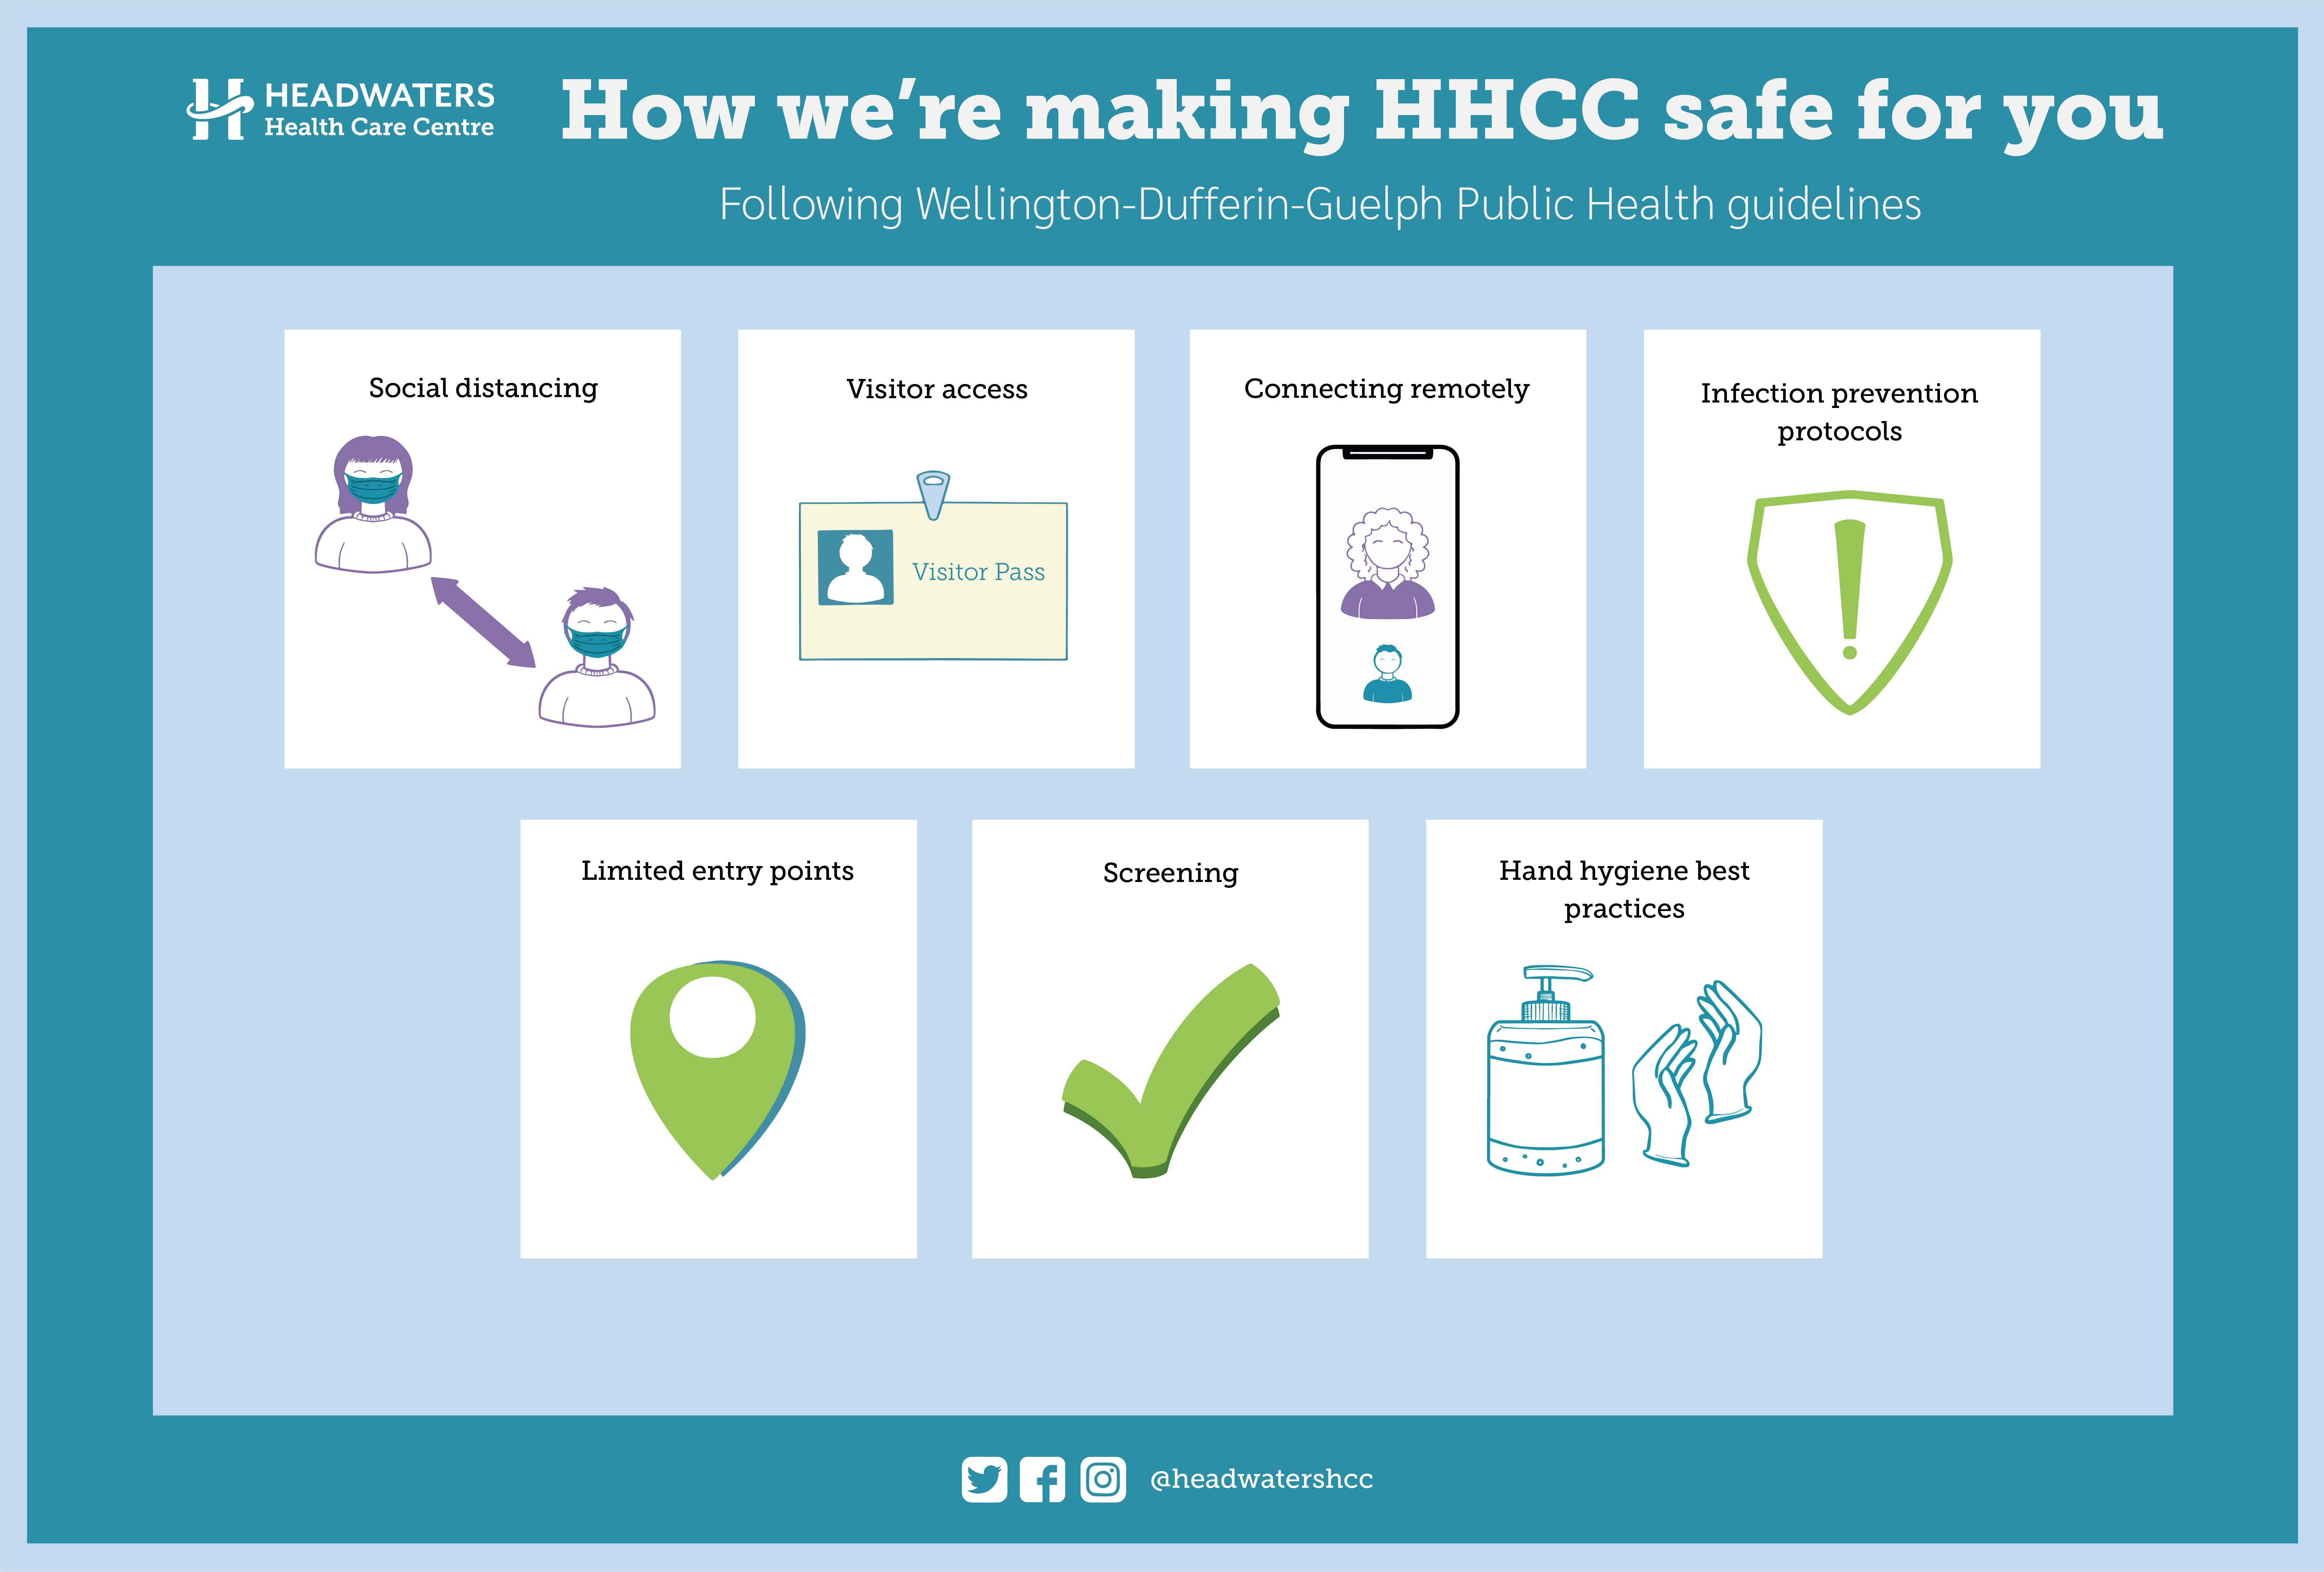 We're making HHCC COVID safe for you by following Wellington-Dufferin Guelph Public Health Guidelines.